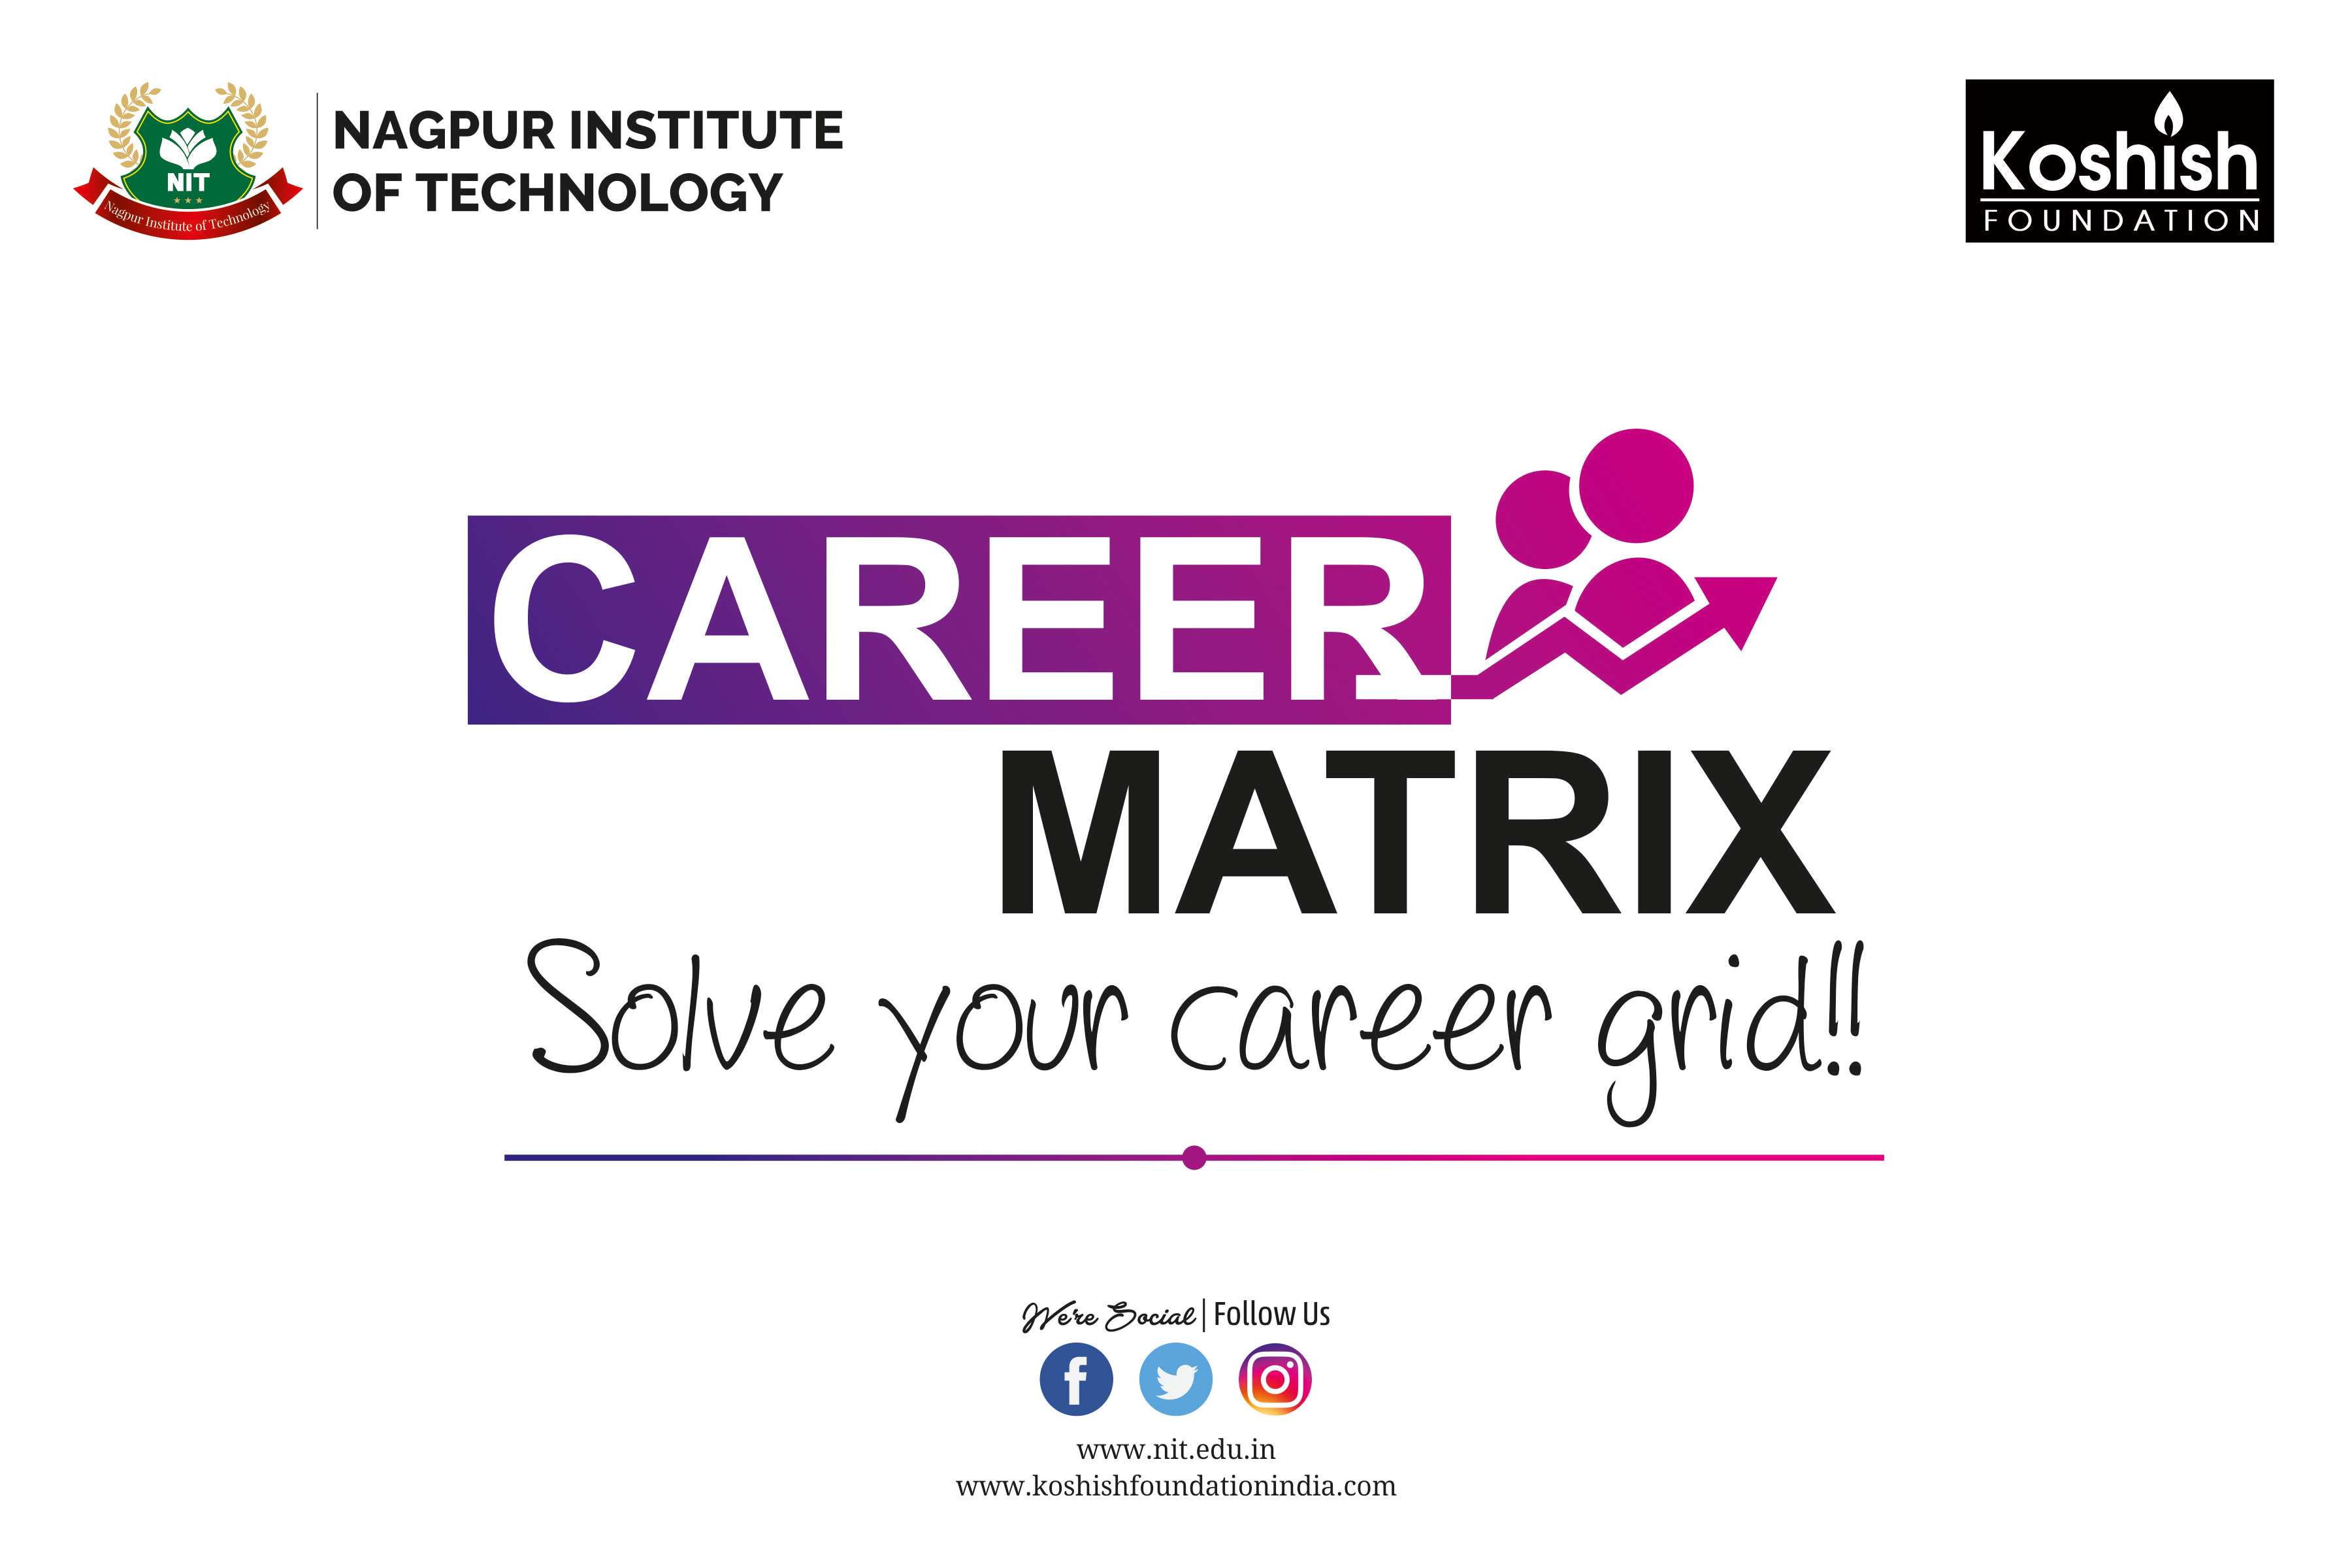 Koshish Foundation Nagpur Career Matrix Program by Anand Desai Dheya Career Matrix